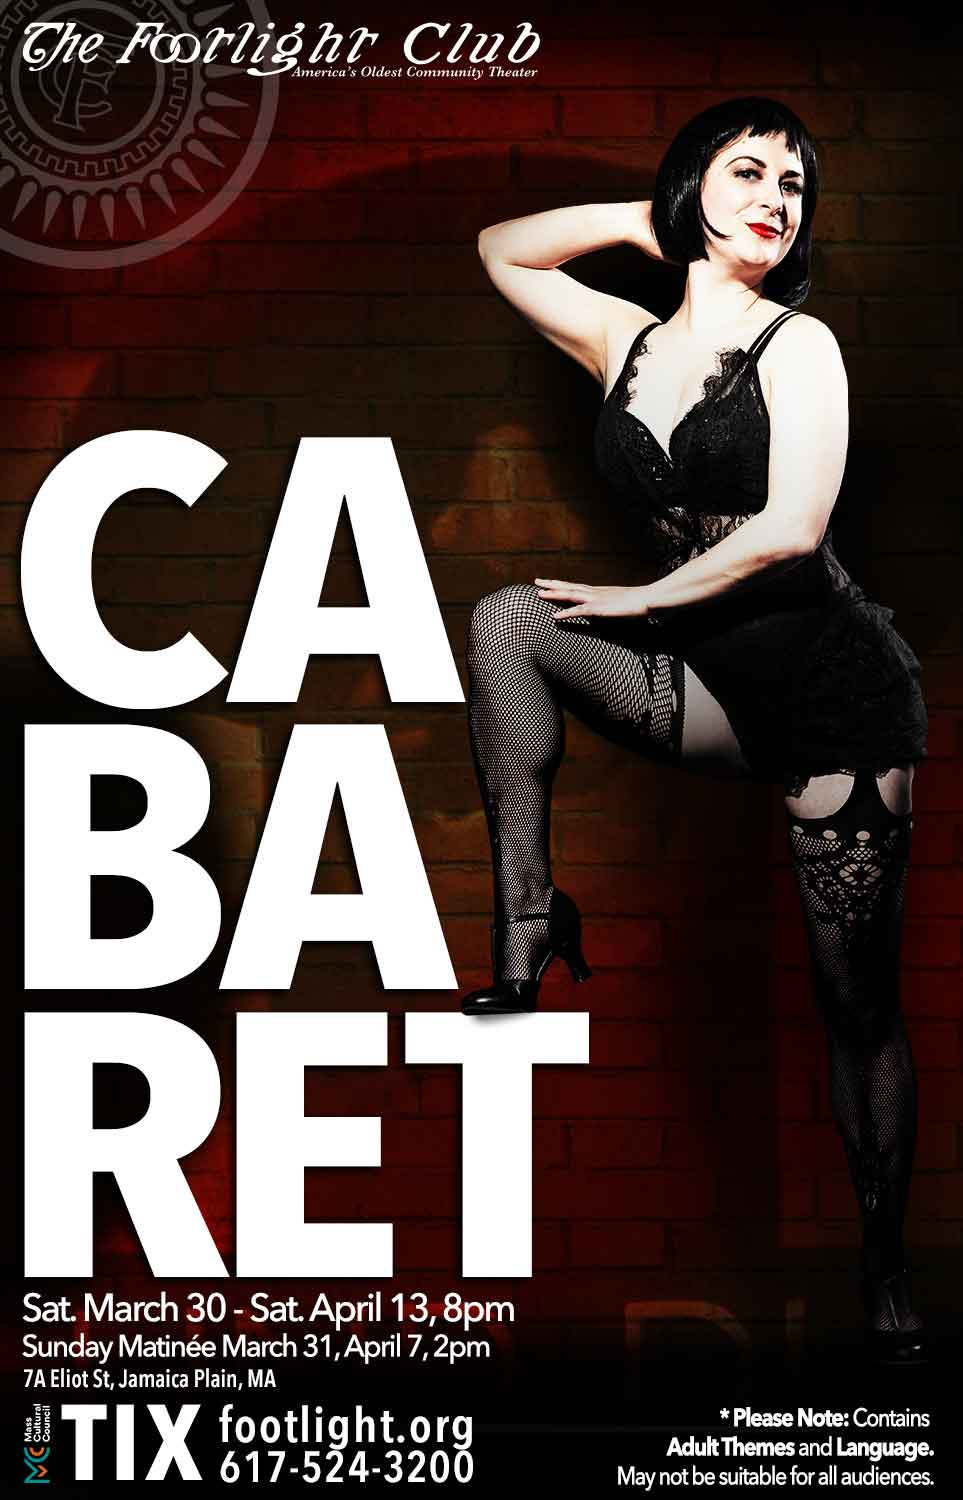 Perry Albert as Sally Bowles in the Footlight Club production of Cabaret